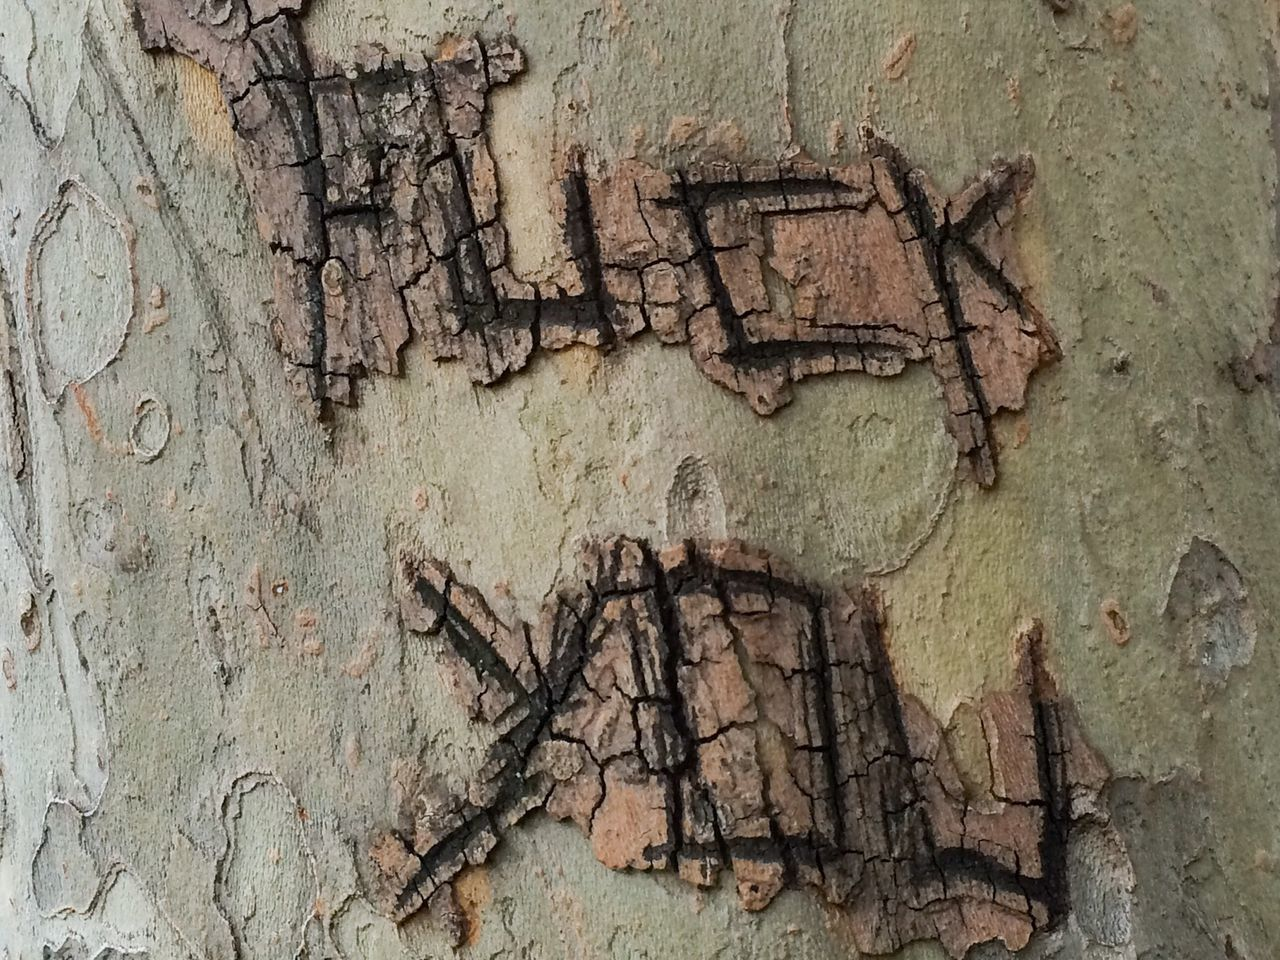 Offensive Text On Tree Trunk